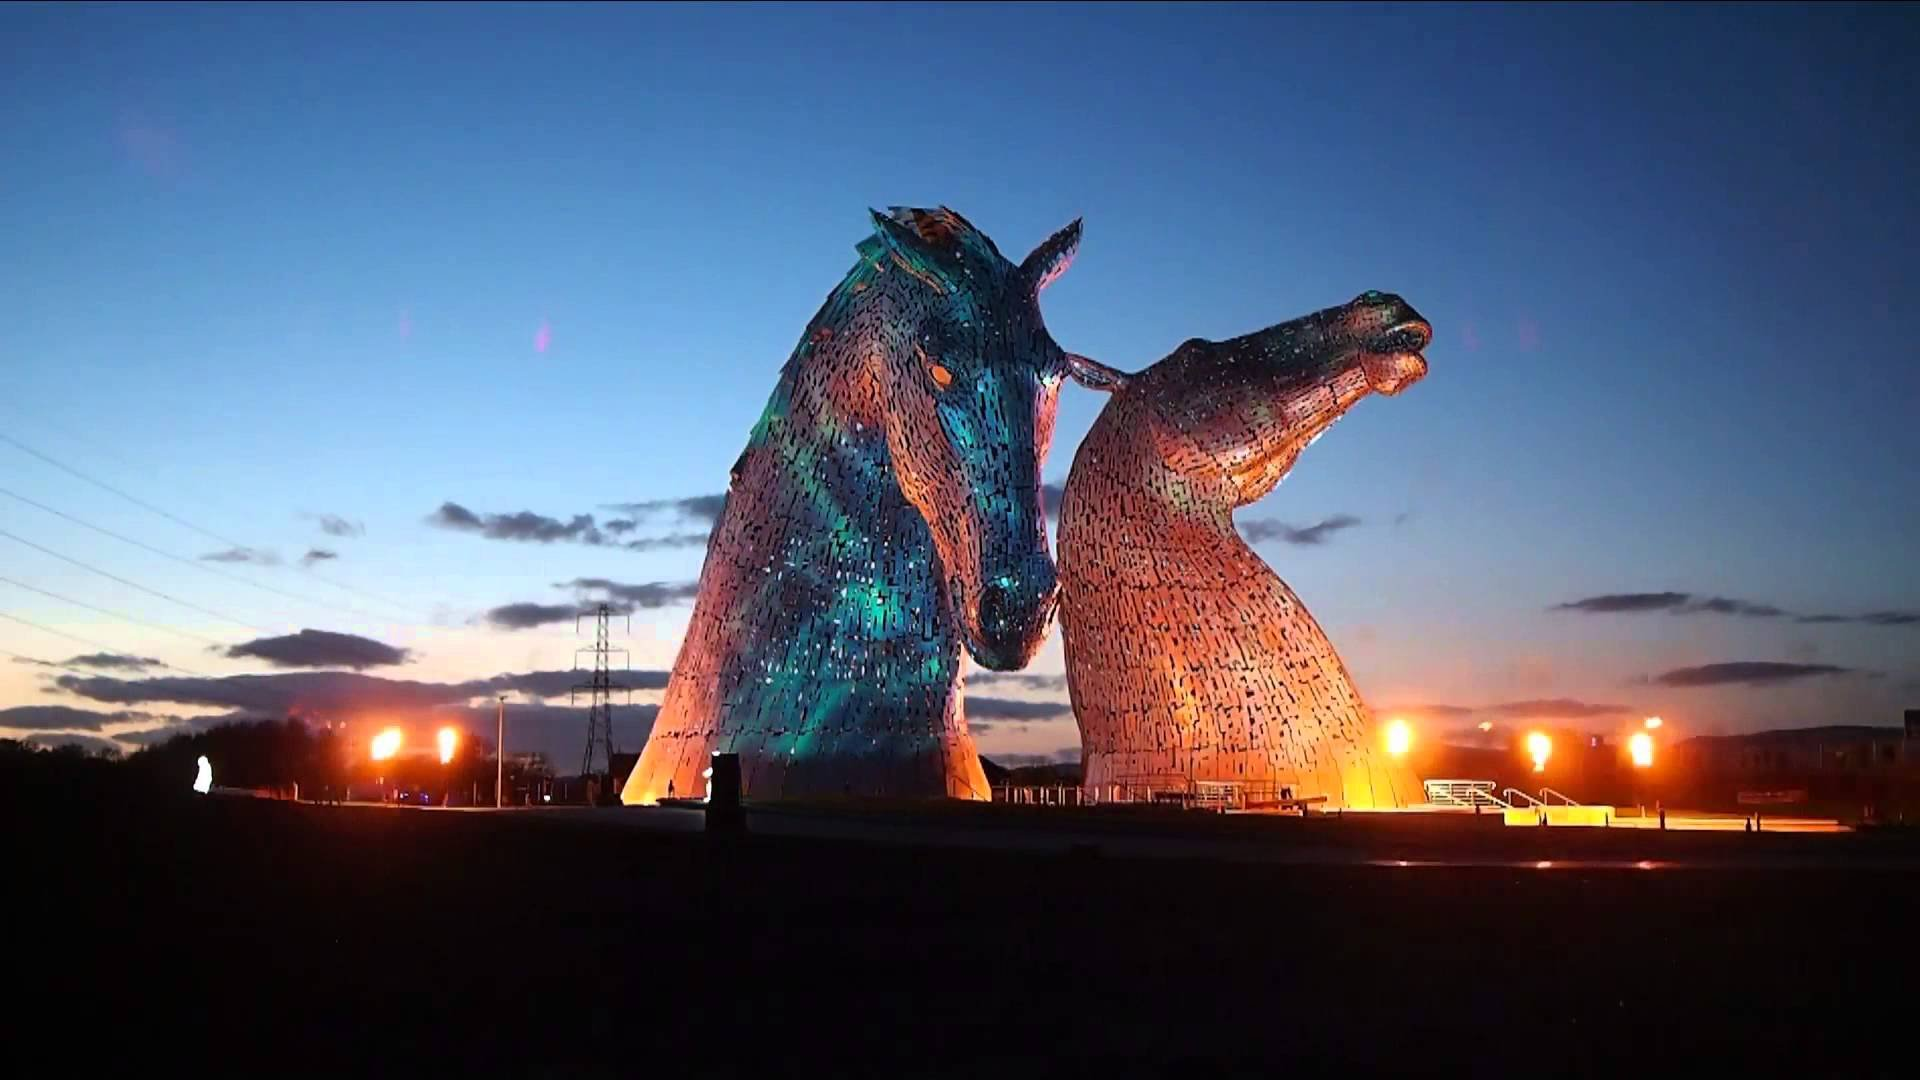 the-kelpies-horse-heads-open-in-scotland-wallpaper.jpg